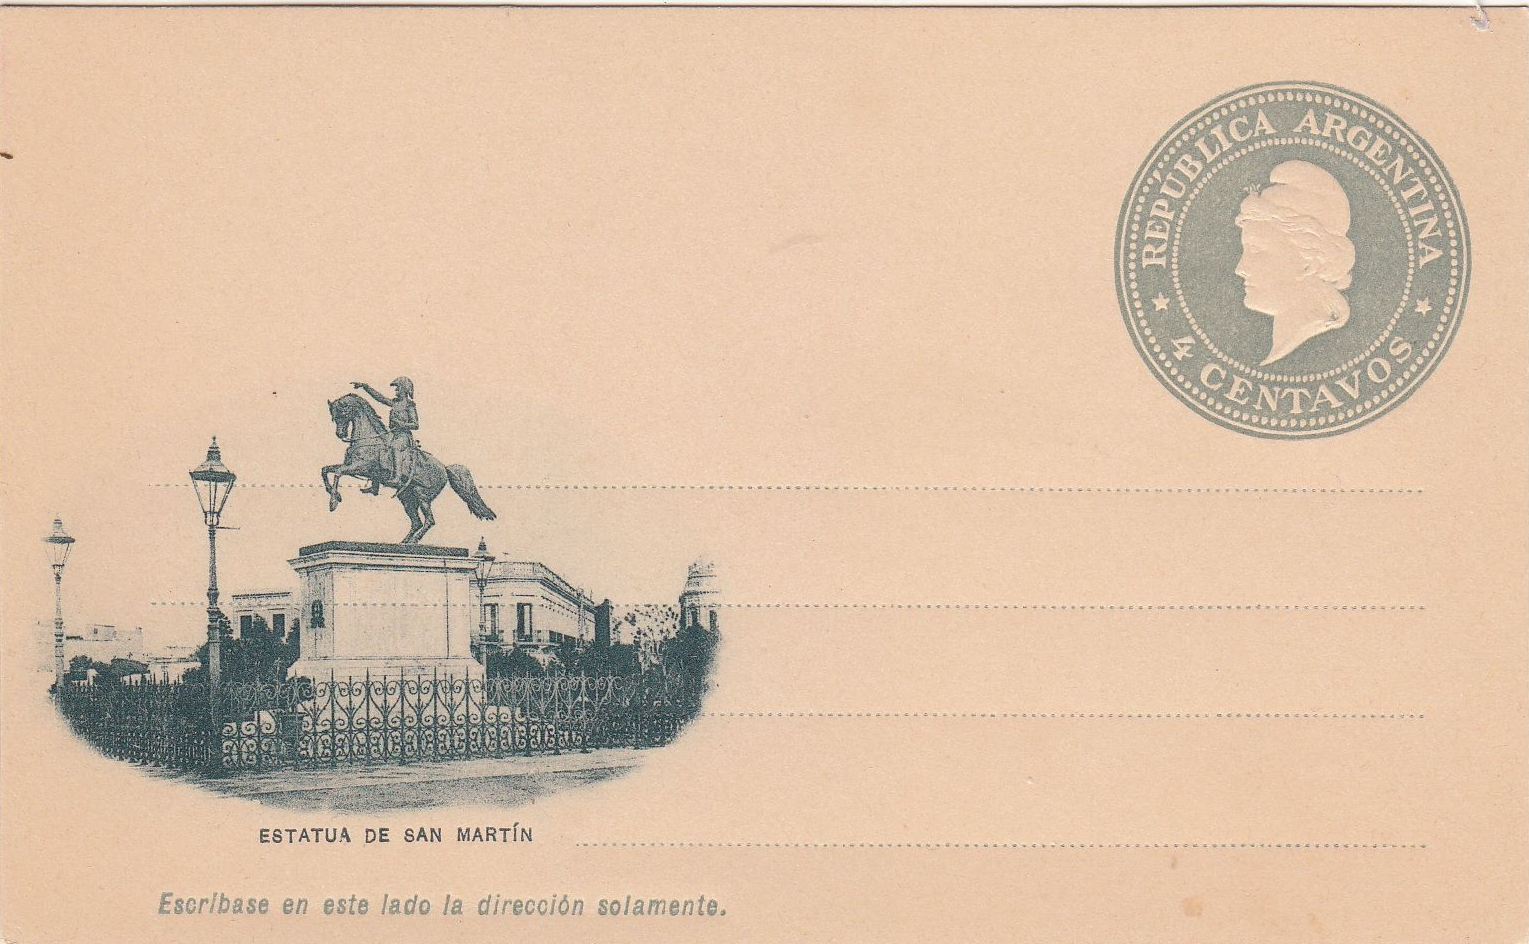 Argentina - postal stationery depicting San Martin equestrian statue